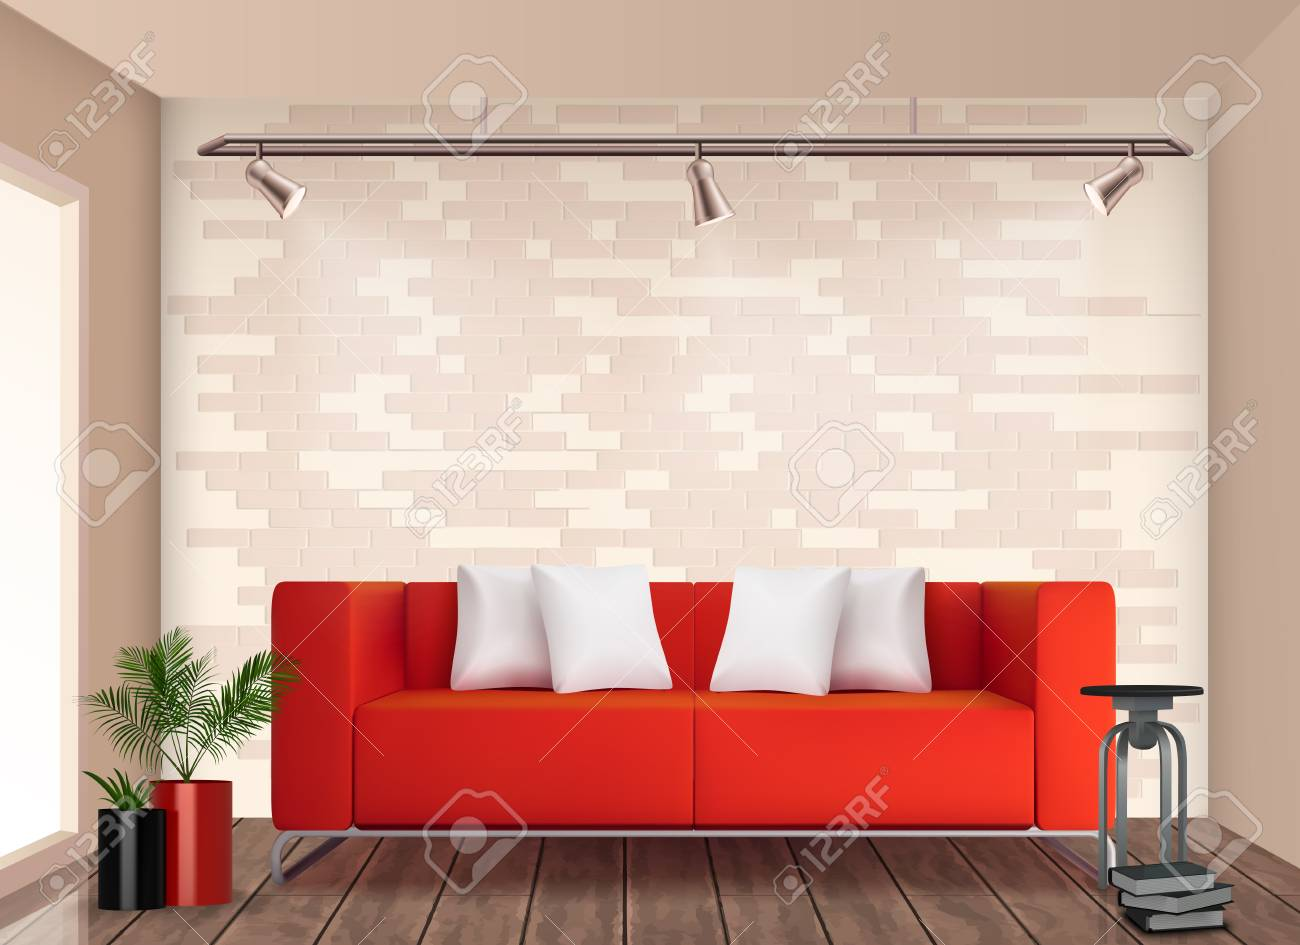 Small room stylish interior design with red sofa and flower pot brighten up neutral walls realistic vector illustration - 109843178